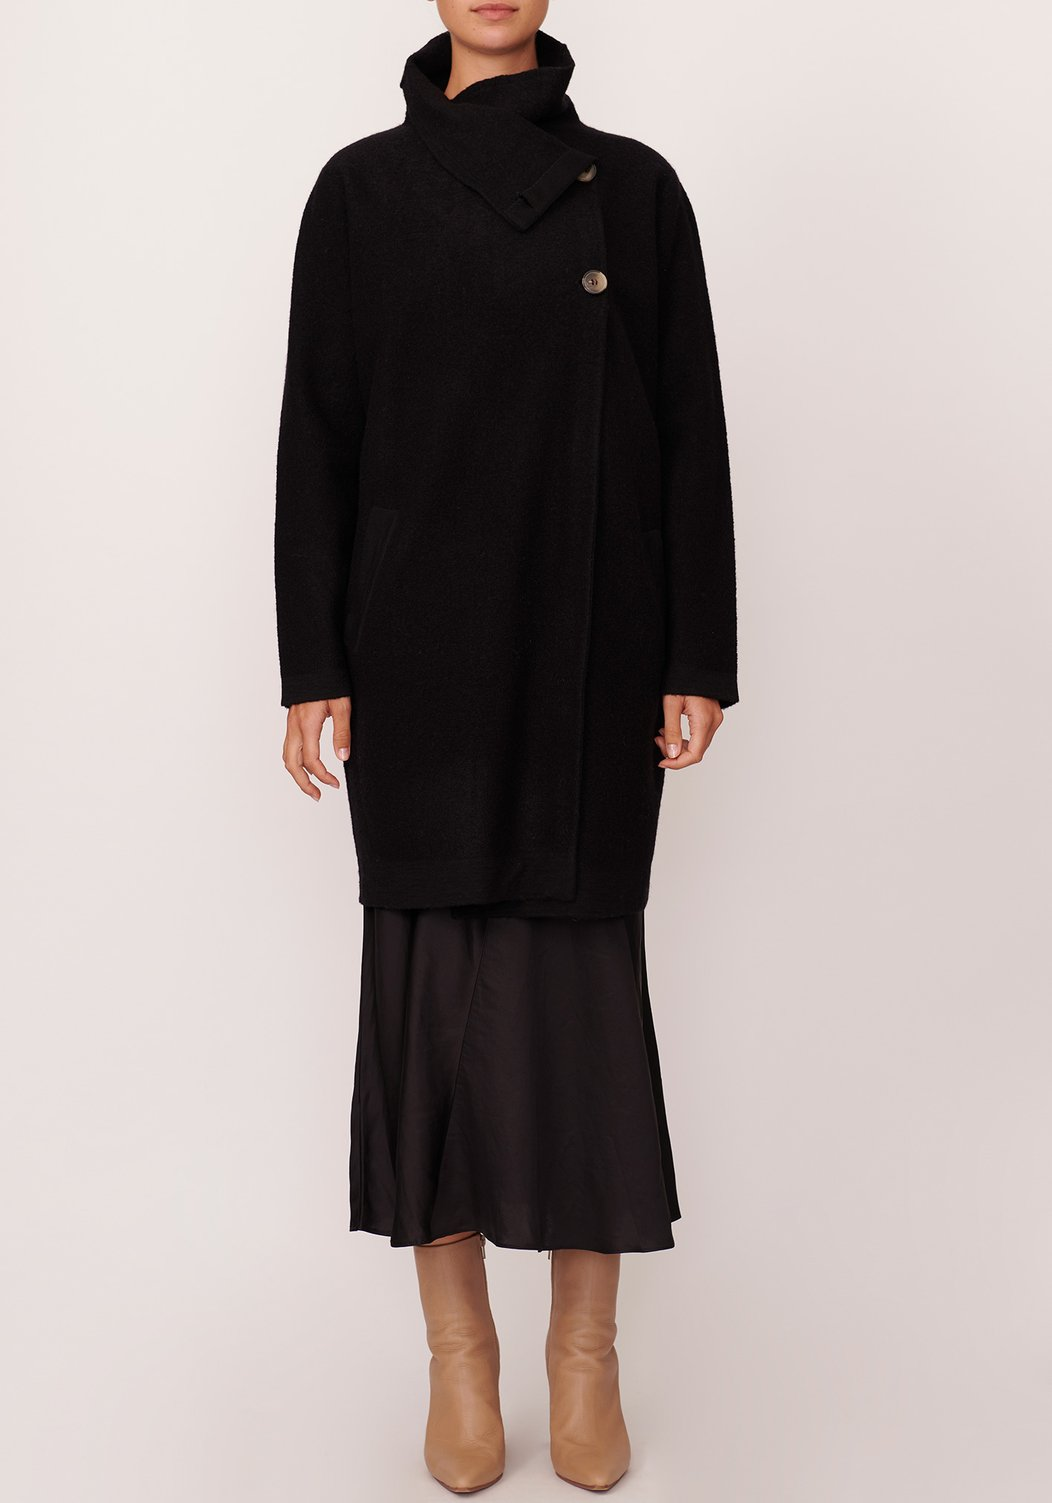 Pol River Draped Black Coat